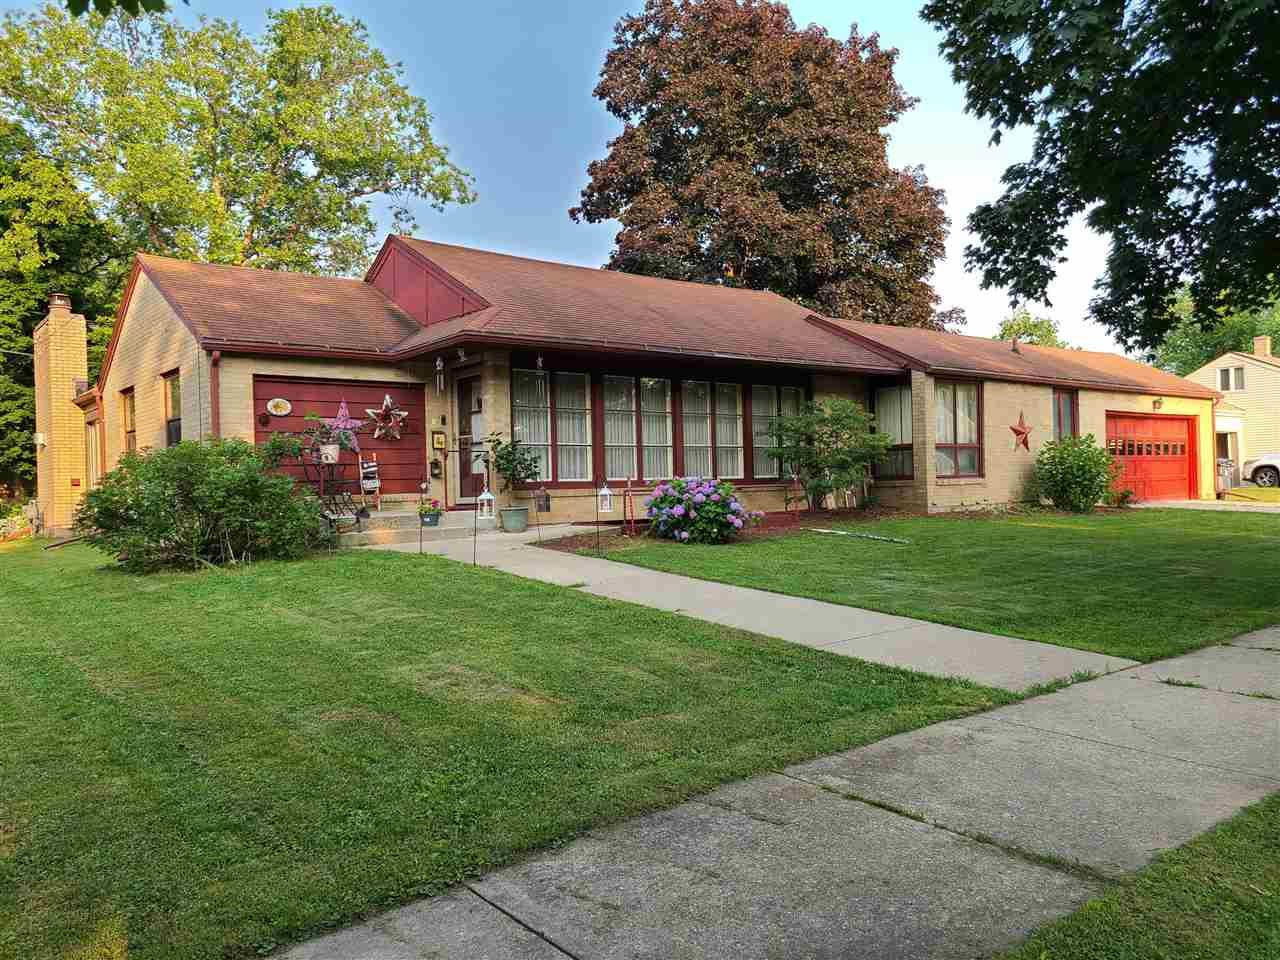 708 26th Ave, Monroe, WI 53566 - #: 1913872